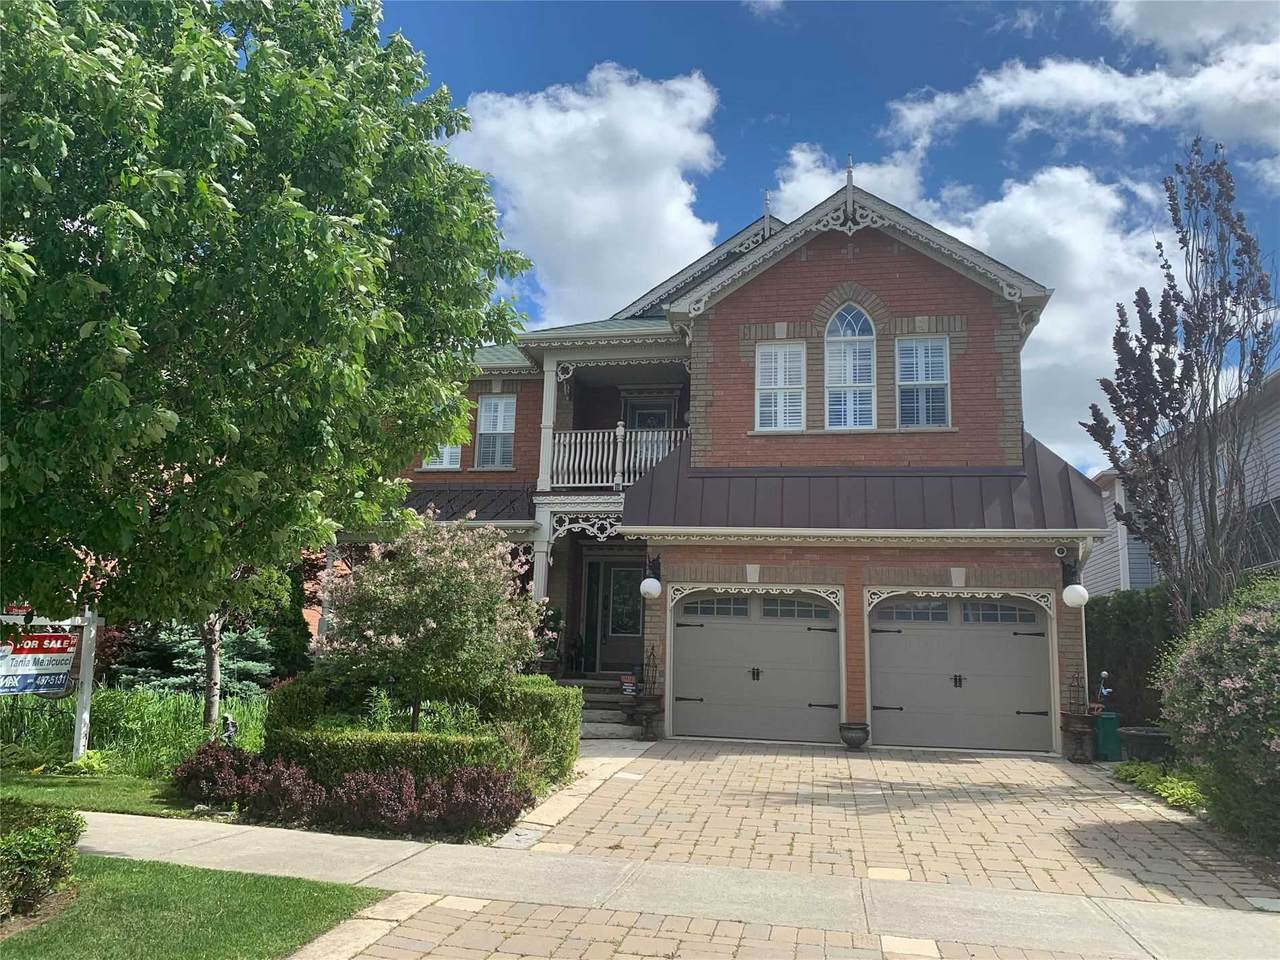 123 Carnwith Dr - Photo 1